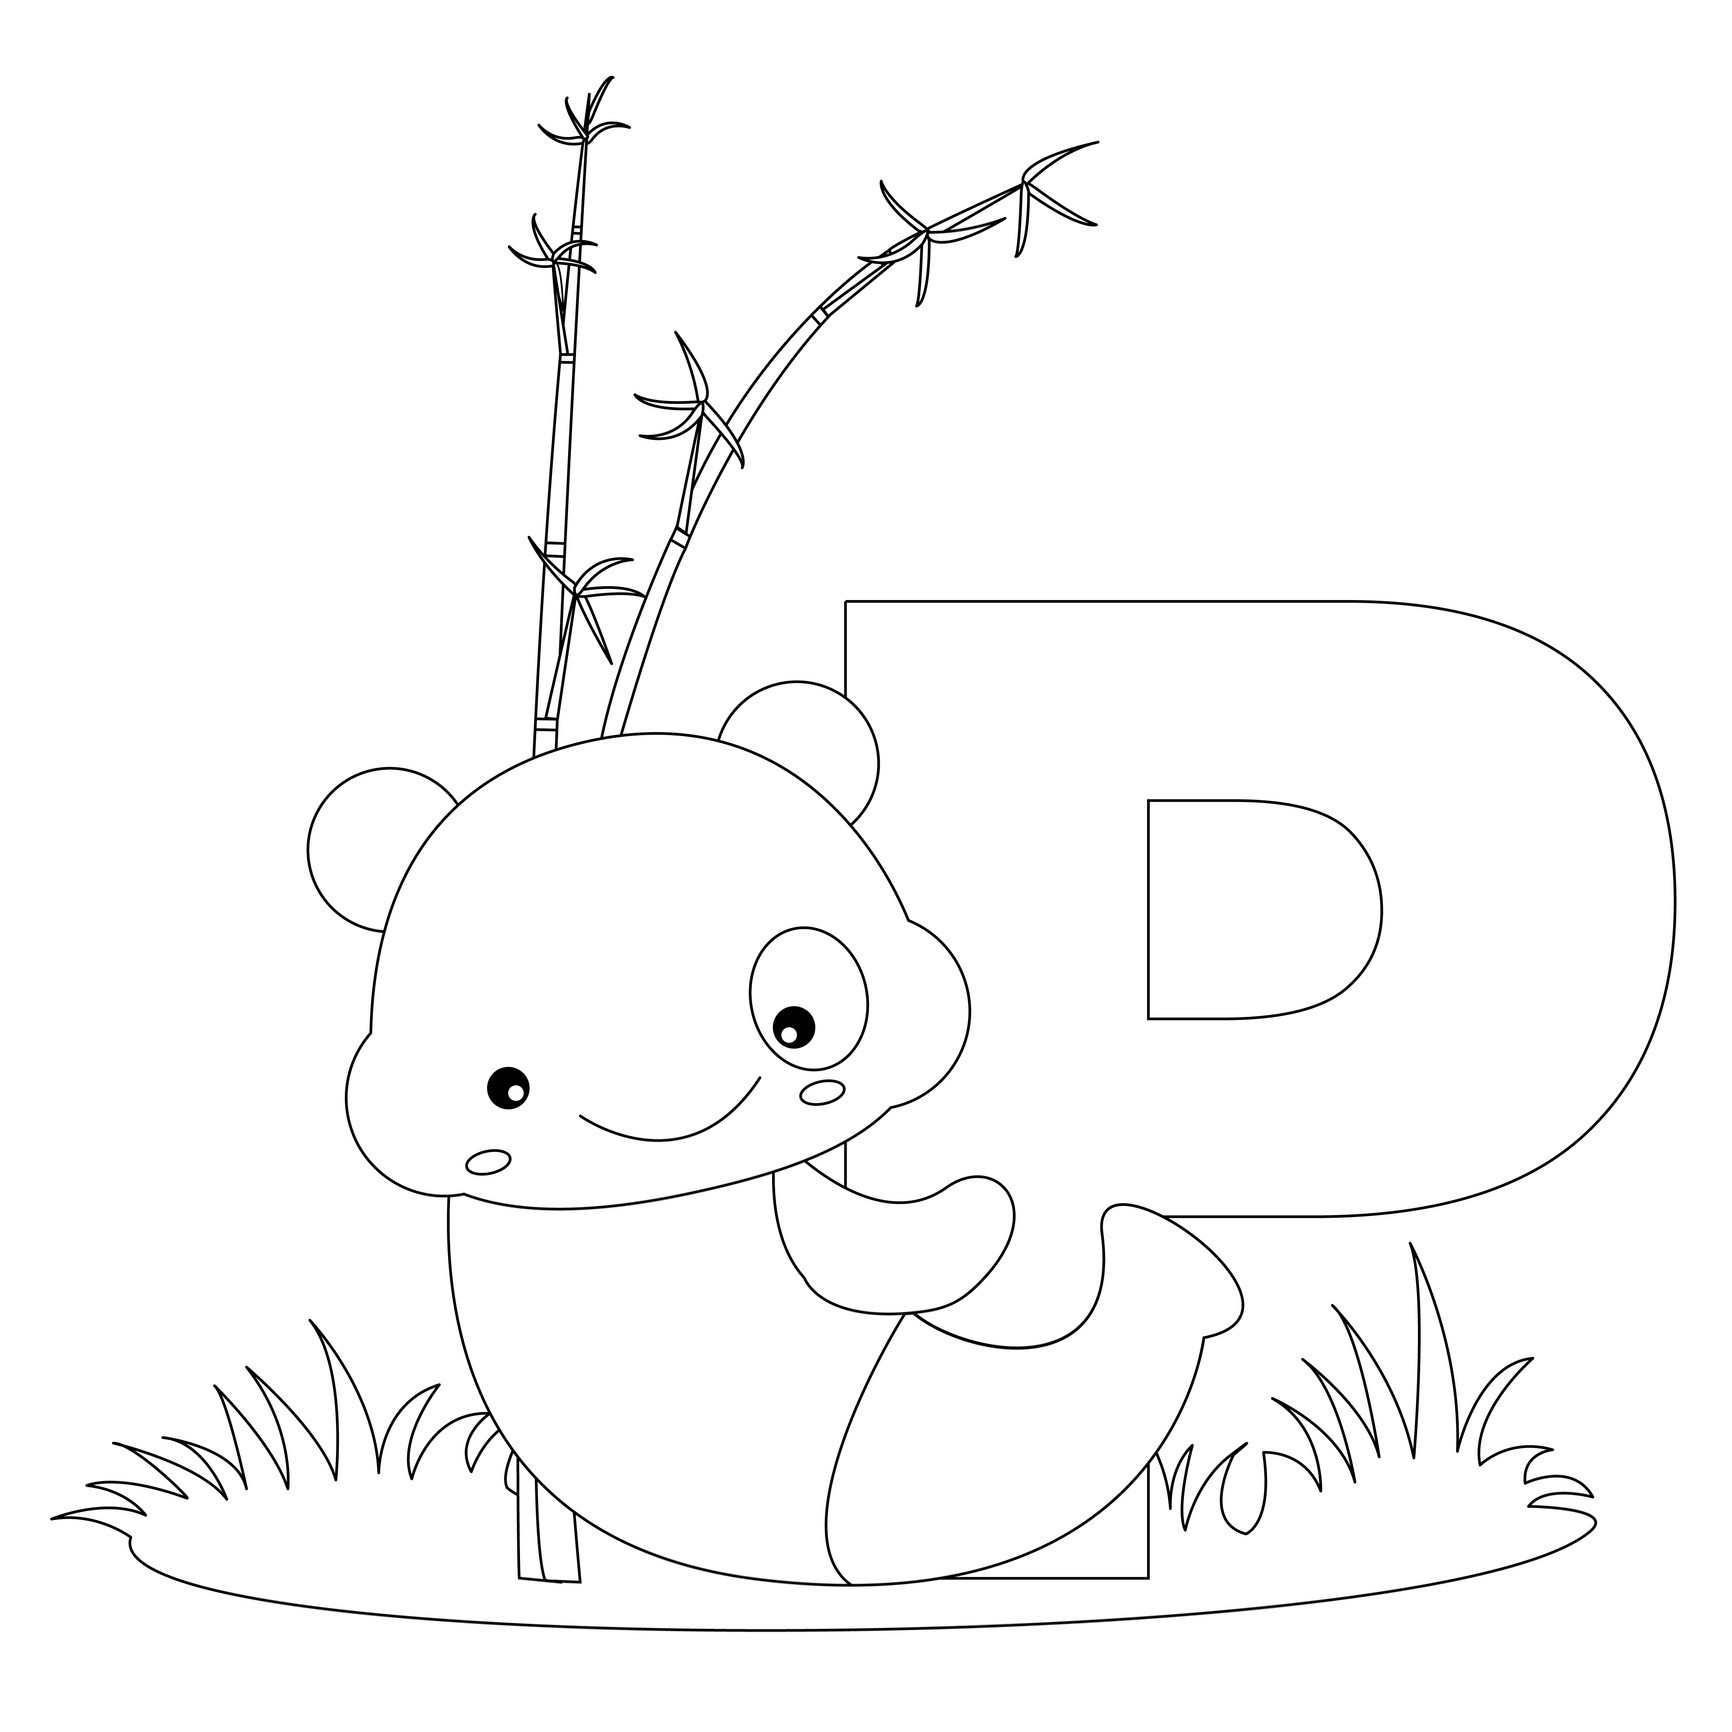 coloring letter p worksheets abc coloring sheet letter p 020 worksheets p letter coloring